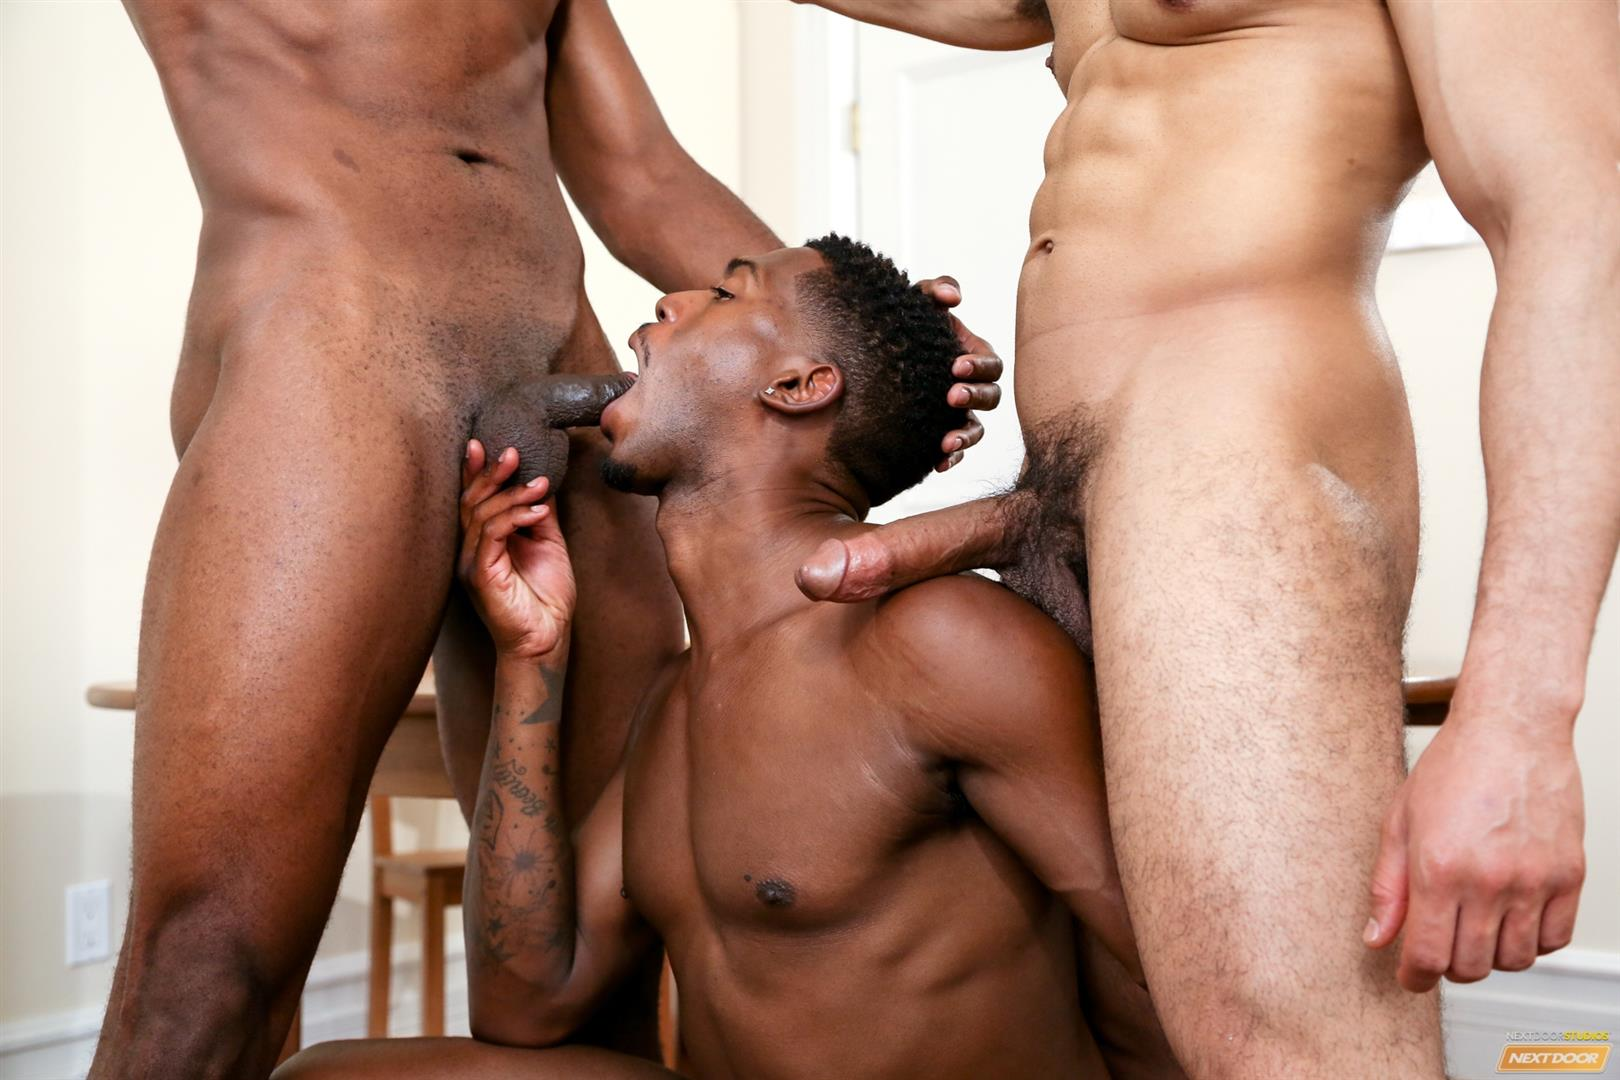 Next Door Ebony Krave Moore and Andre Donovan and Rex Cobra Big Black Cock Amateur Gay Porn 09